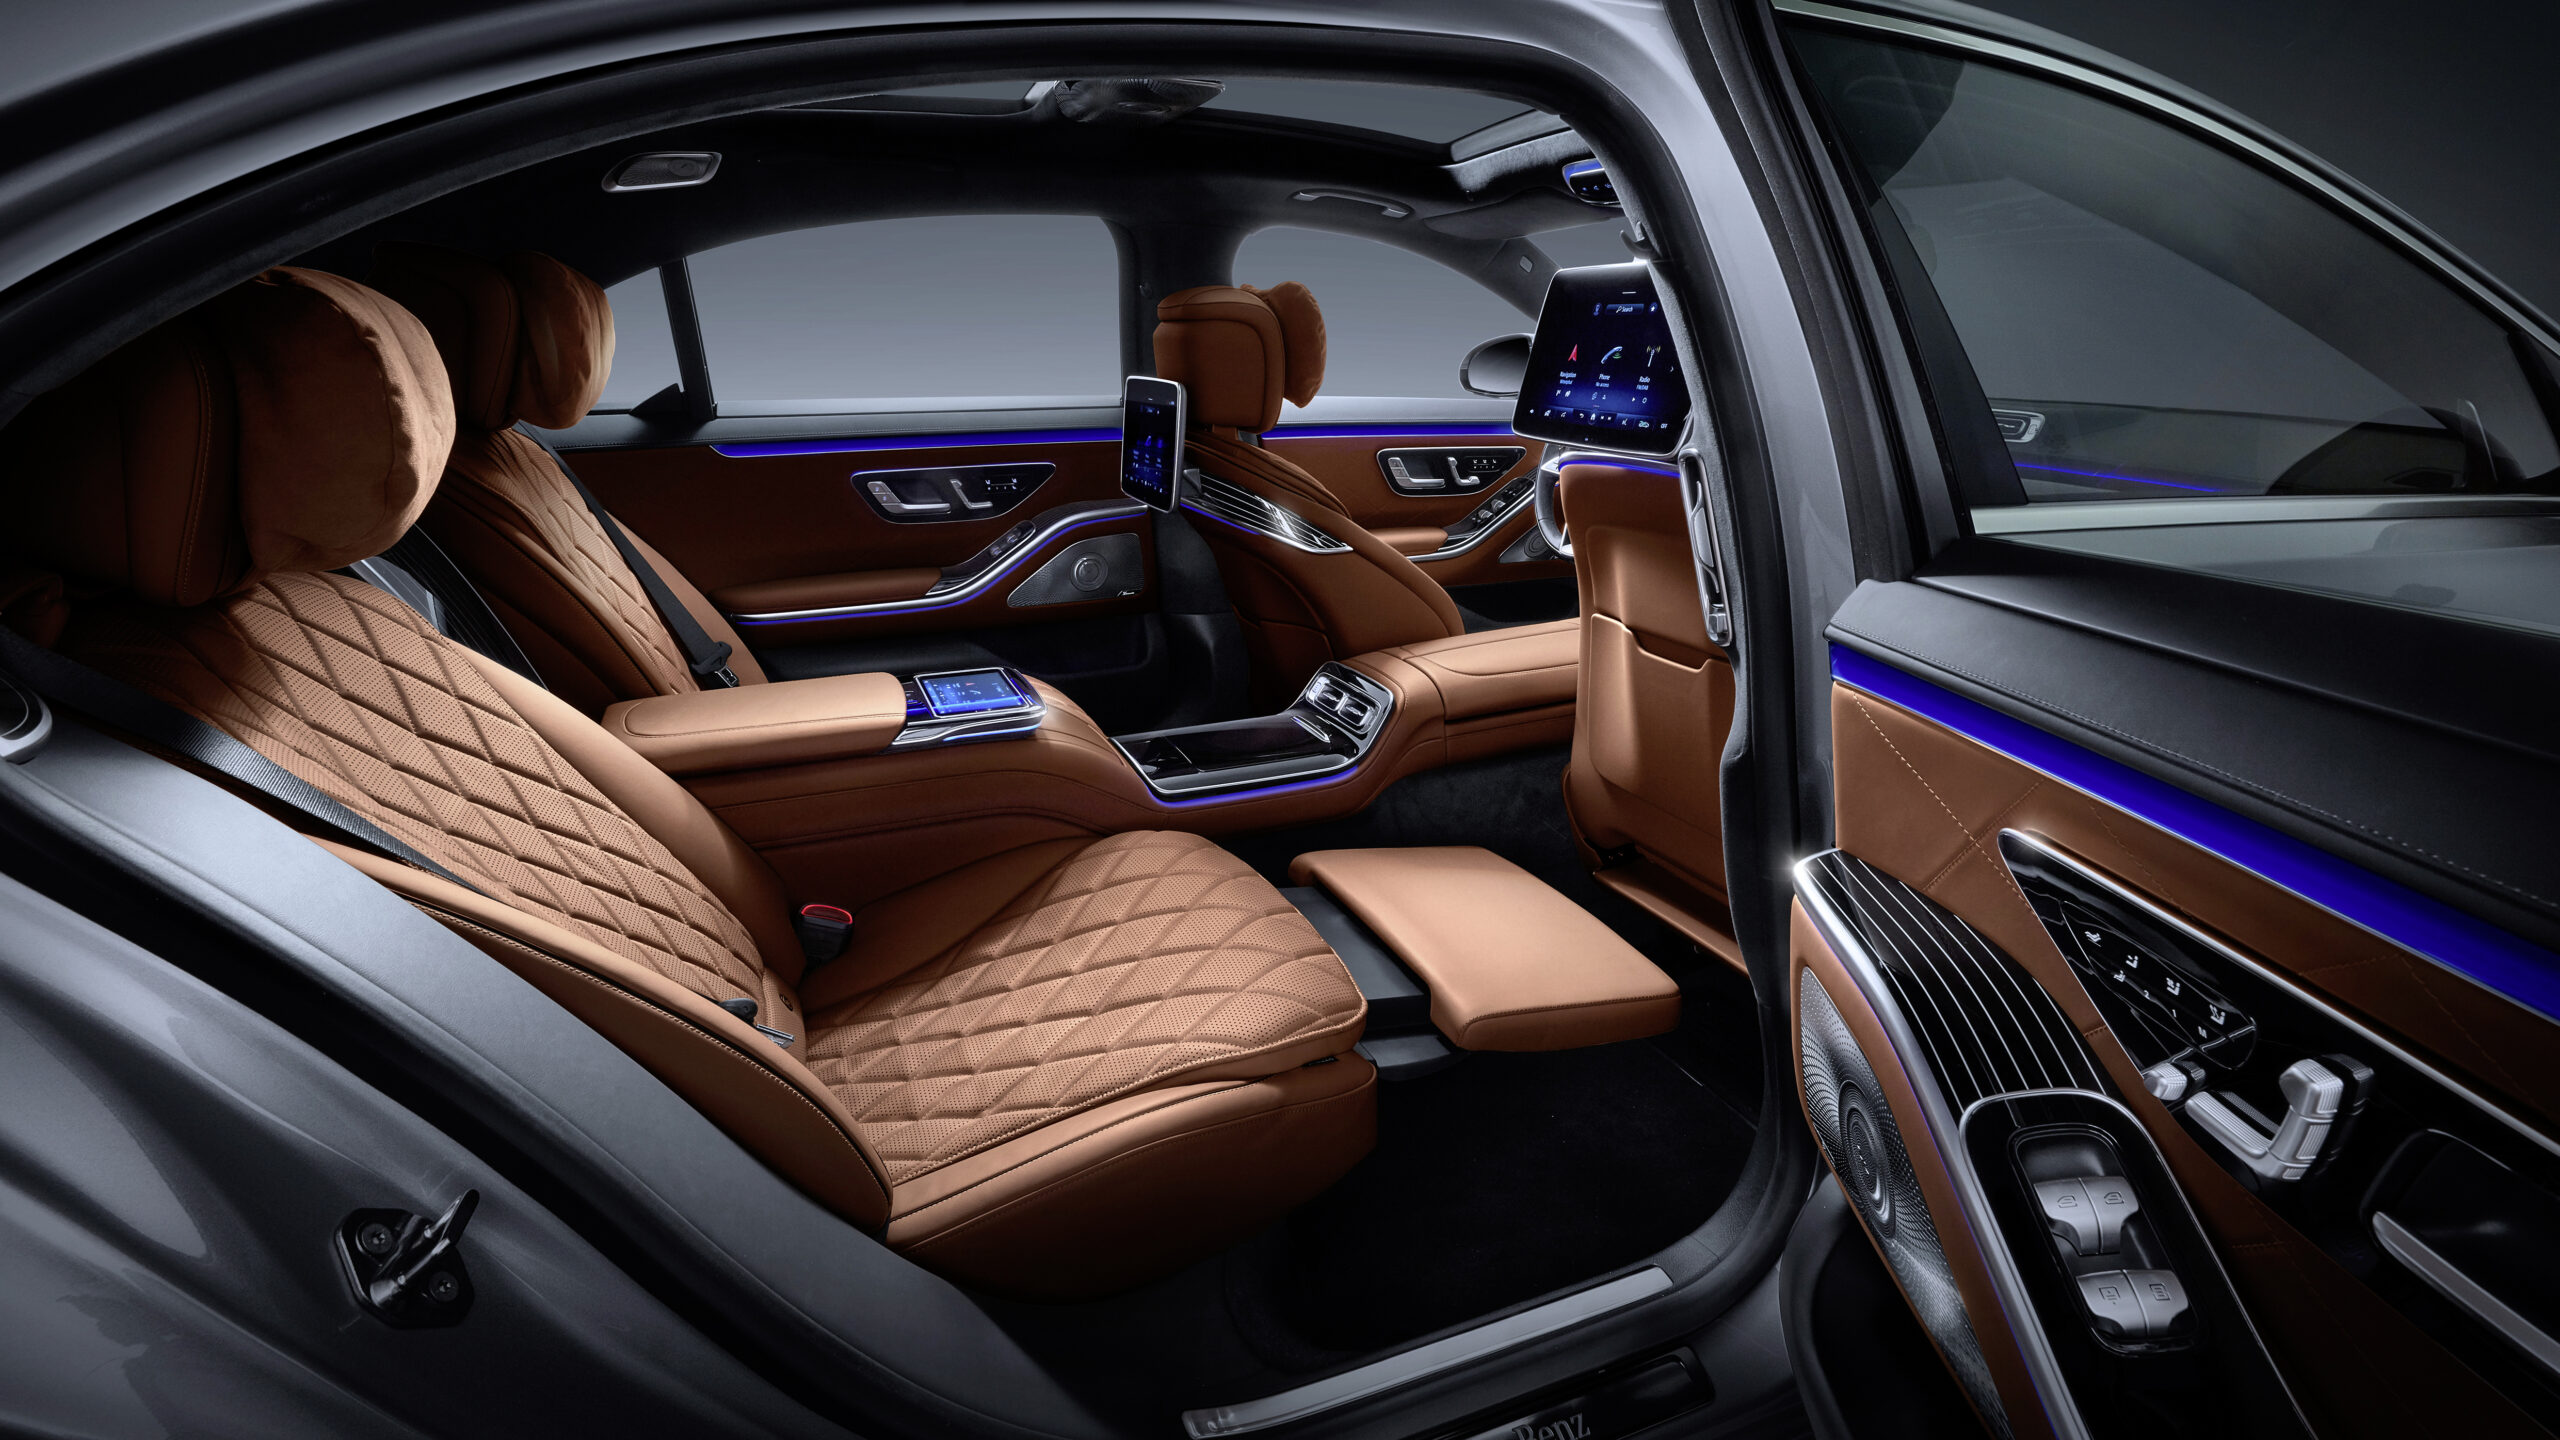 Every new Mercedes-Benz S-Class is a momentous opportunity for heads of state and captains of industry to go big or go home. So the cognoscenti might